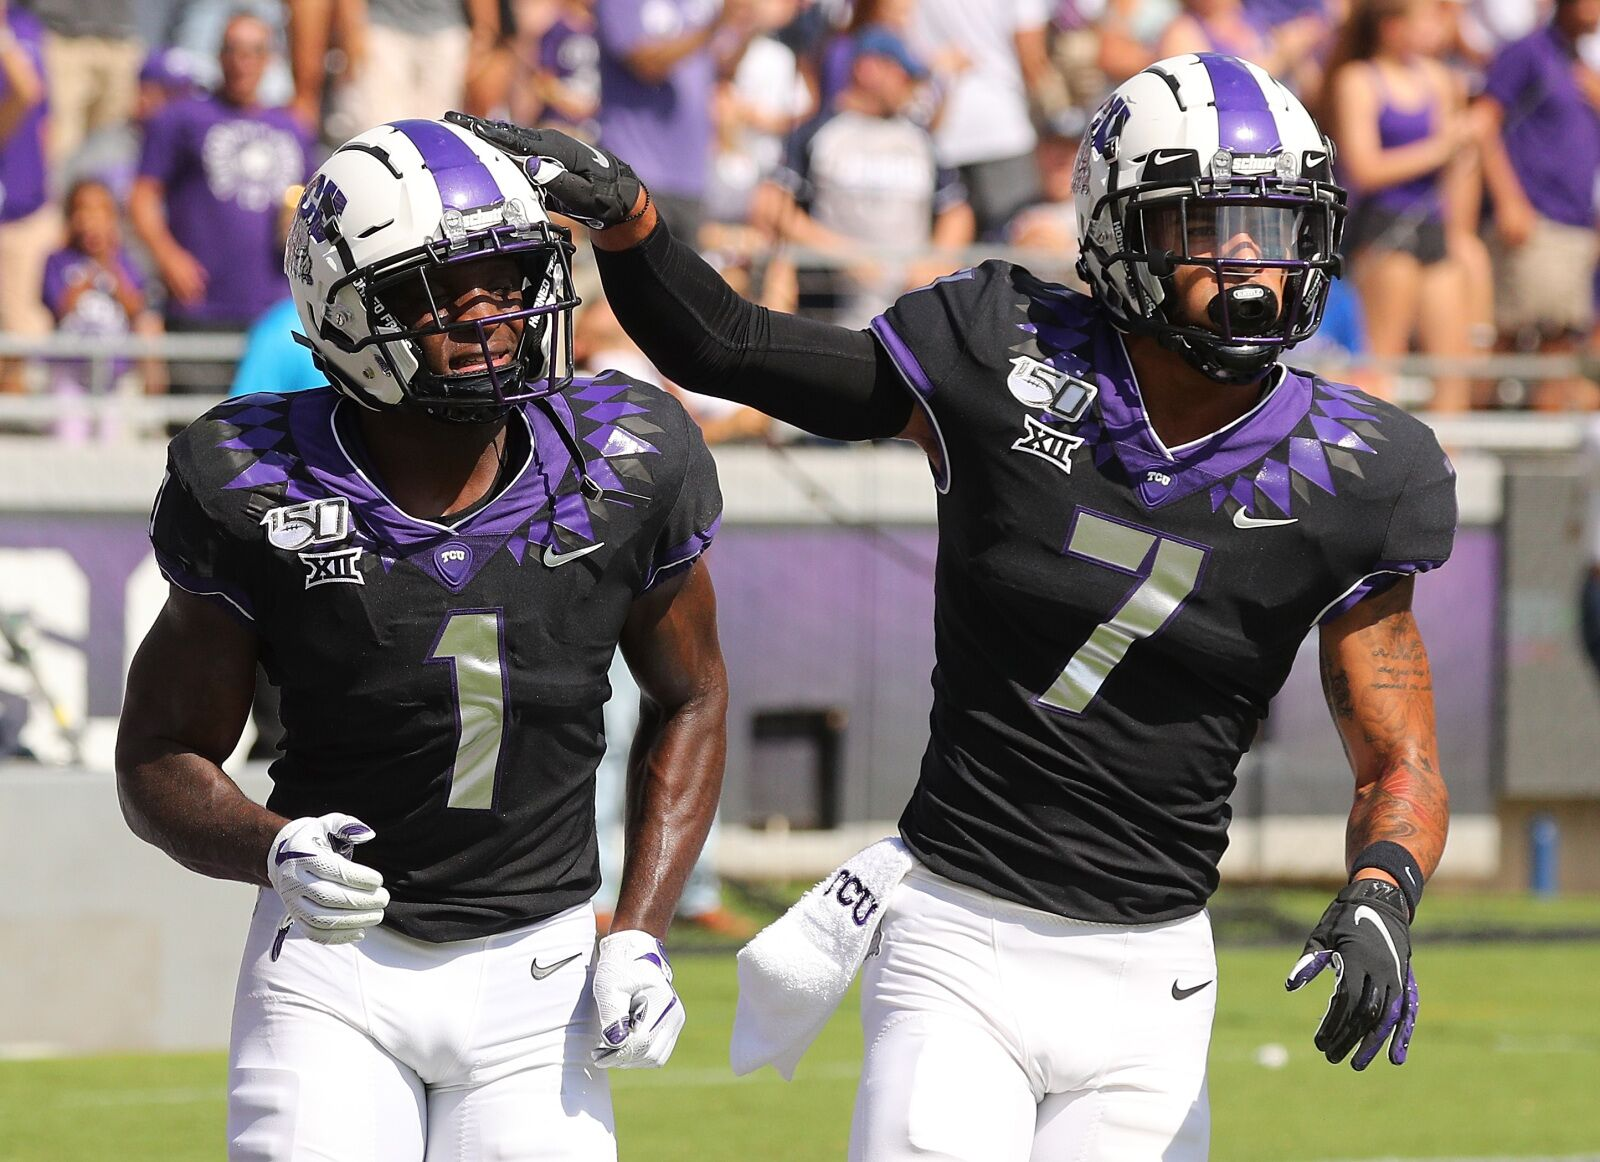 TCU Football: 3 takeaways from ugly loss at Kansas State